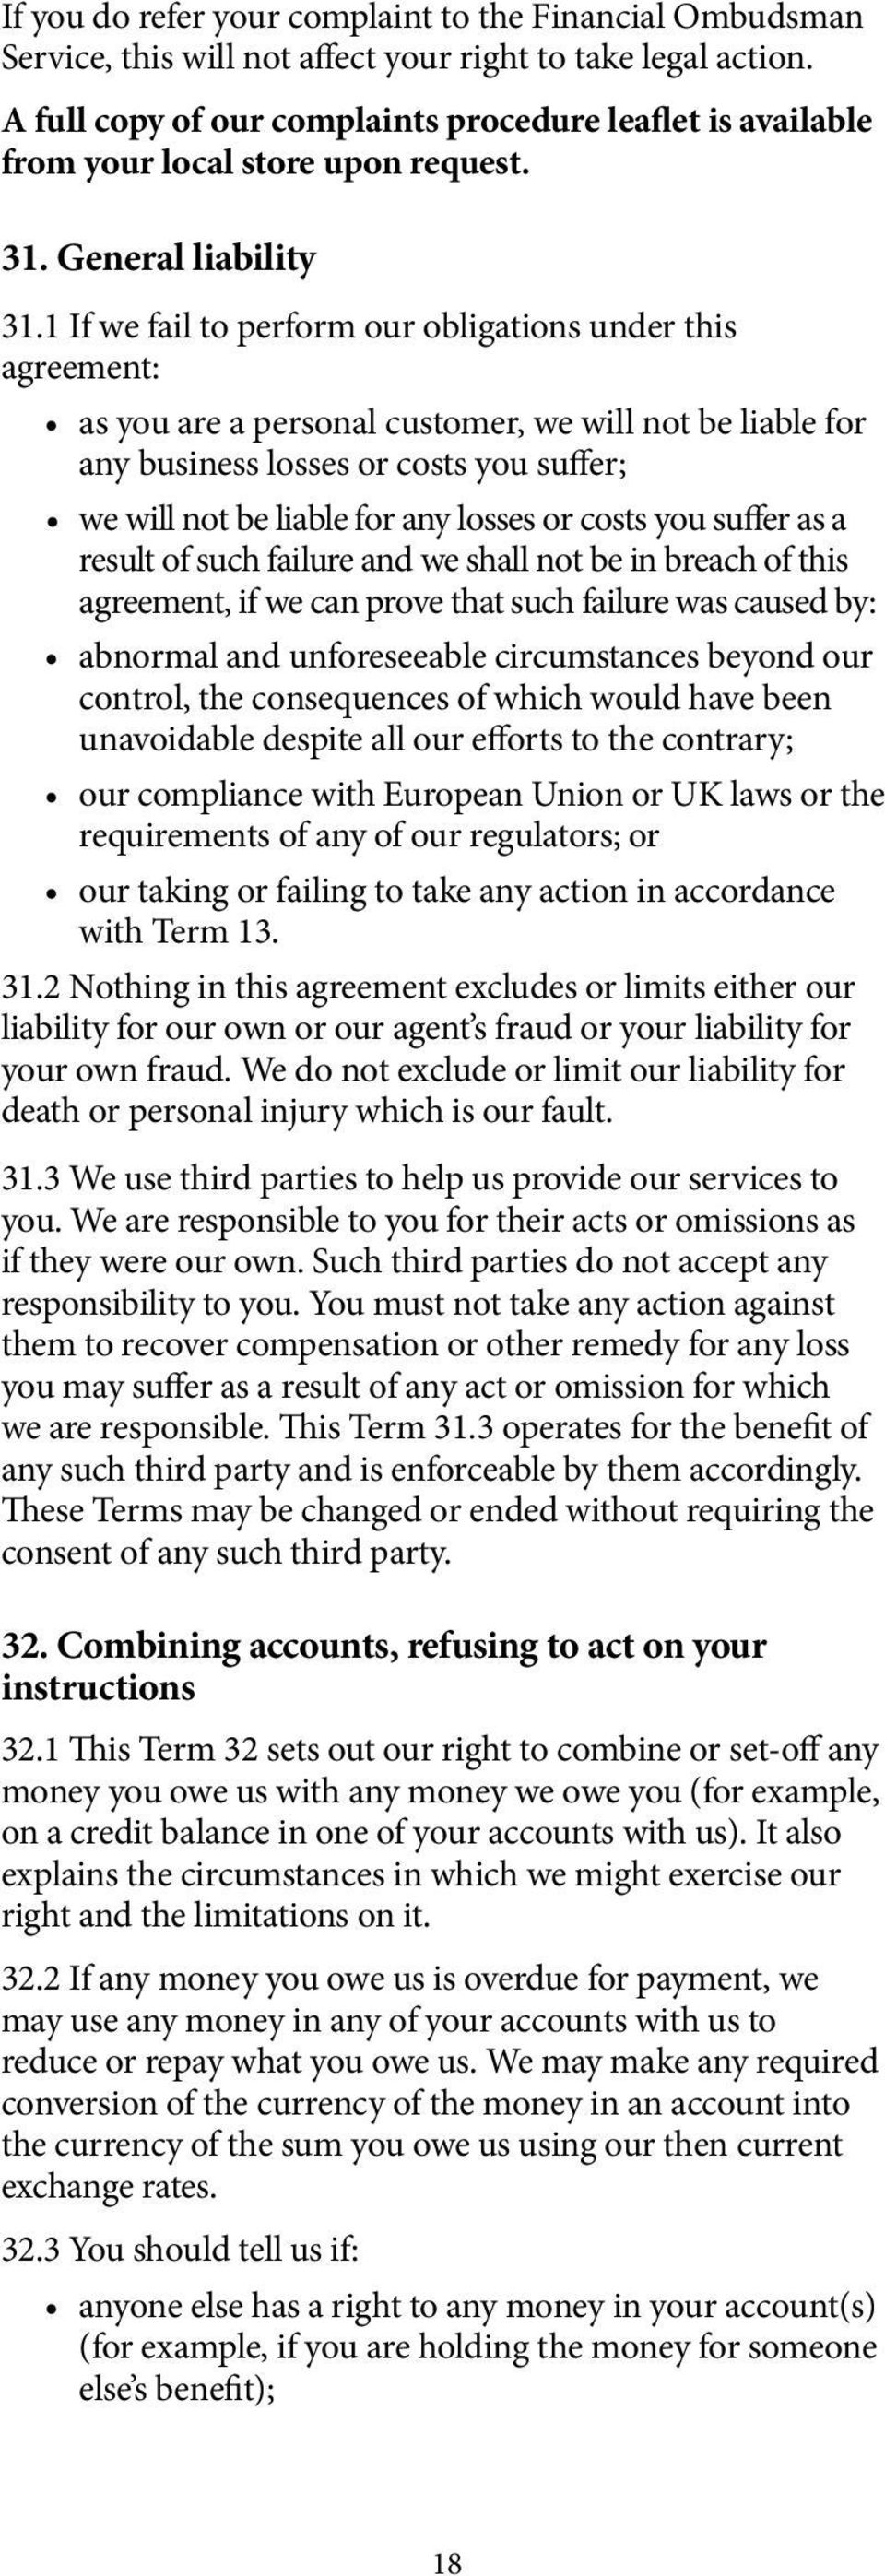 1 If we fail to perform our obligations under this agreement: as you are a personal customer, we will not be liable for any business losses or costs you suffer; we will not be liable for any losses